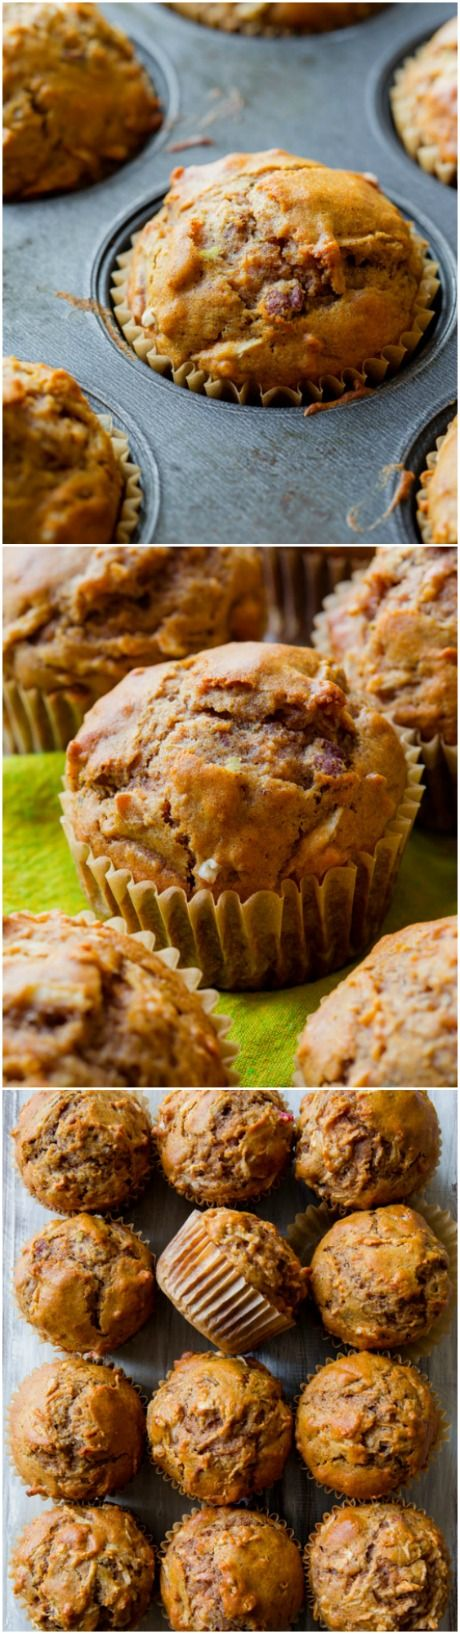 Hearty, healthy, and satisfying whole wheat muffins filled with sweet apples and plenty of cinnamon spice! With zero refined sugar!